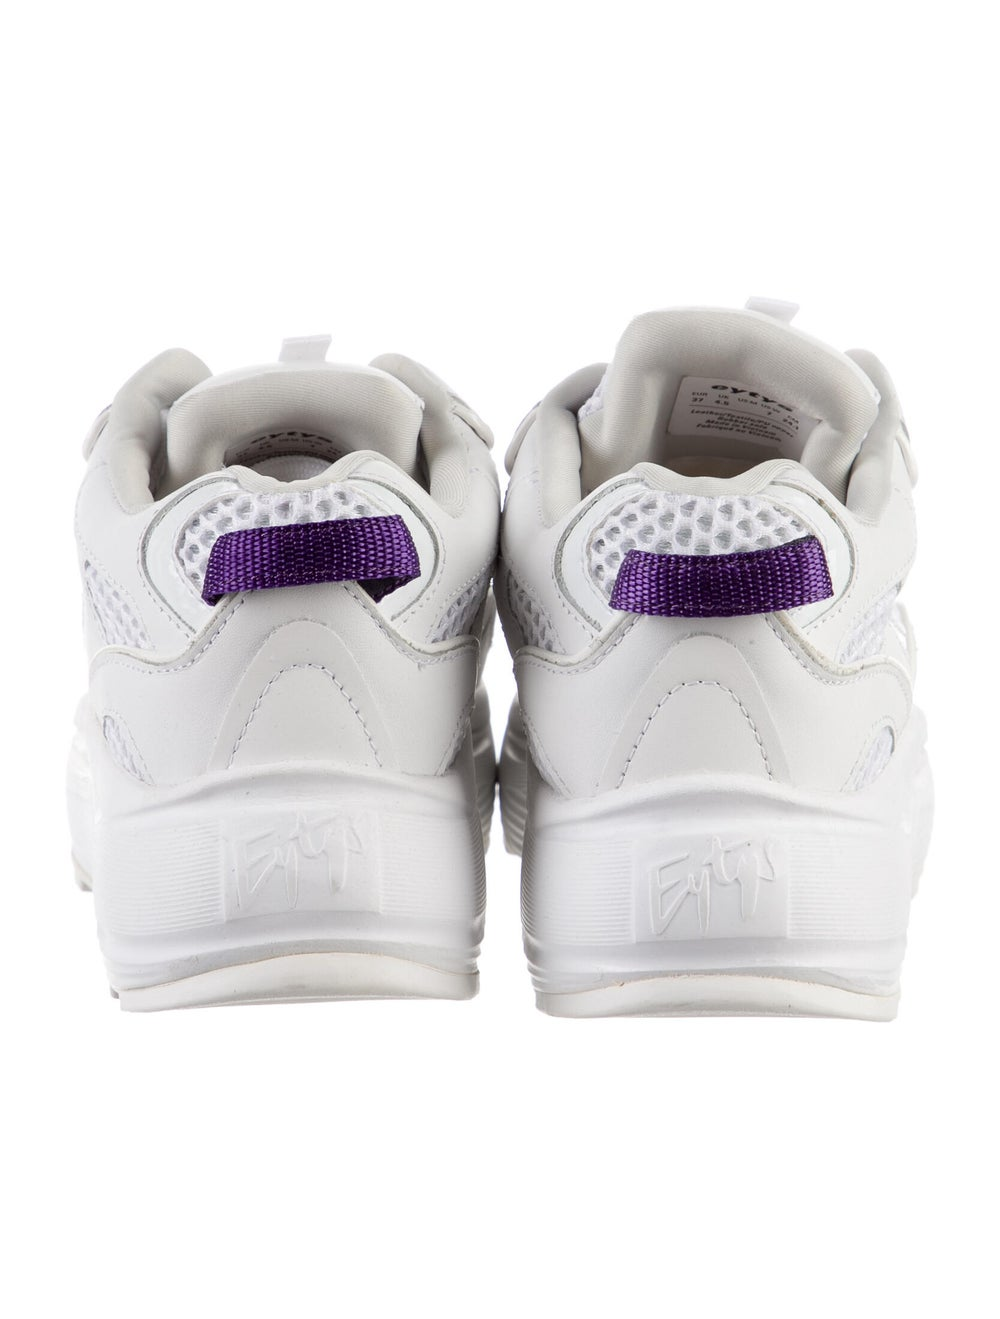 Eytys Leather Sneakers White - image 4